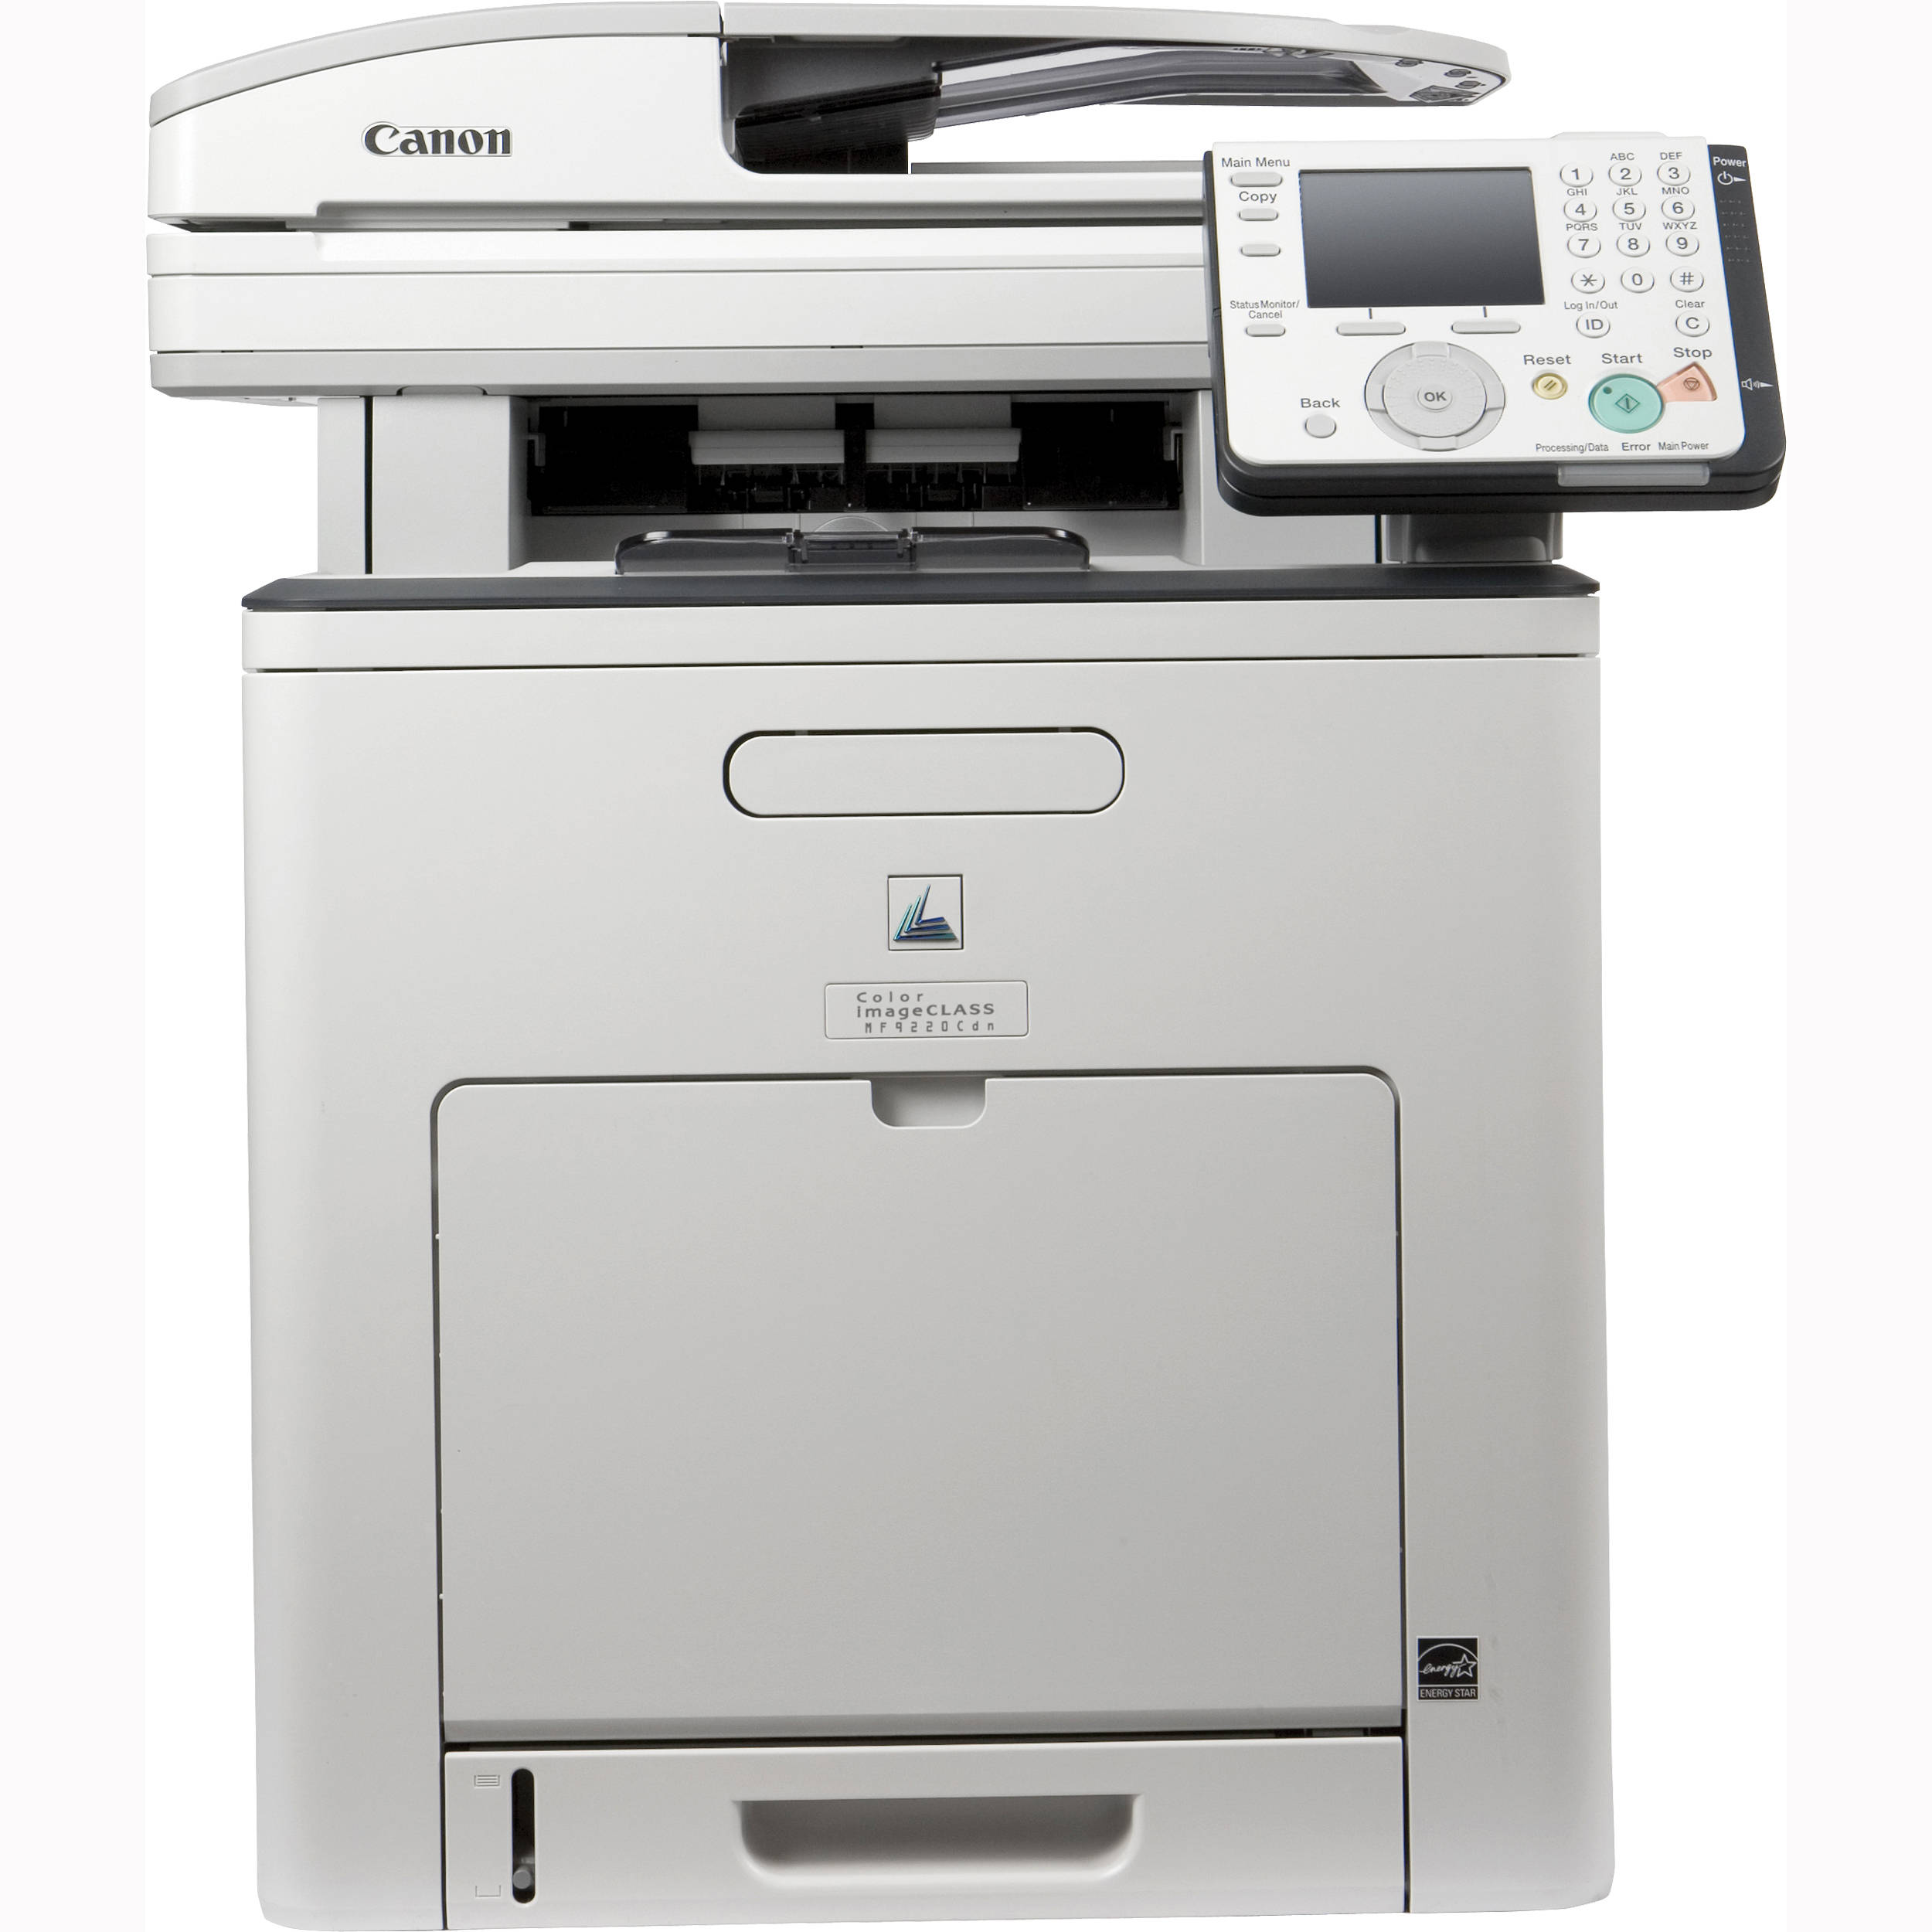 Canon Imagecl Mf9220cdn Network Color All In One Laser Printer